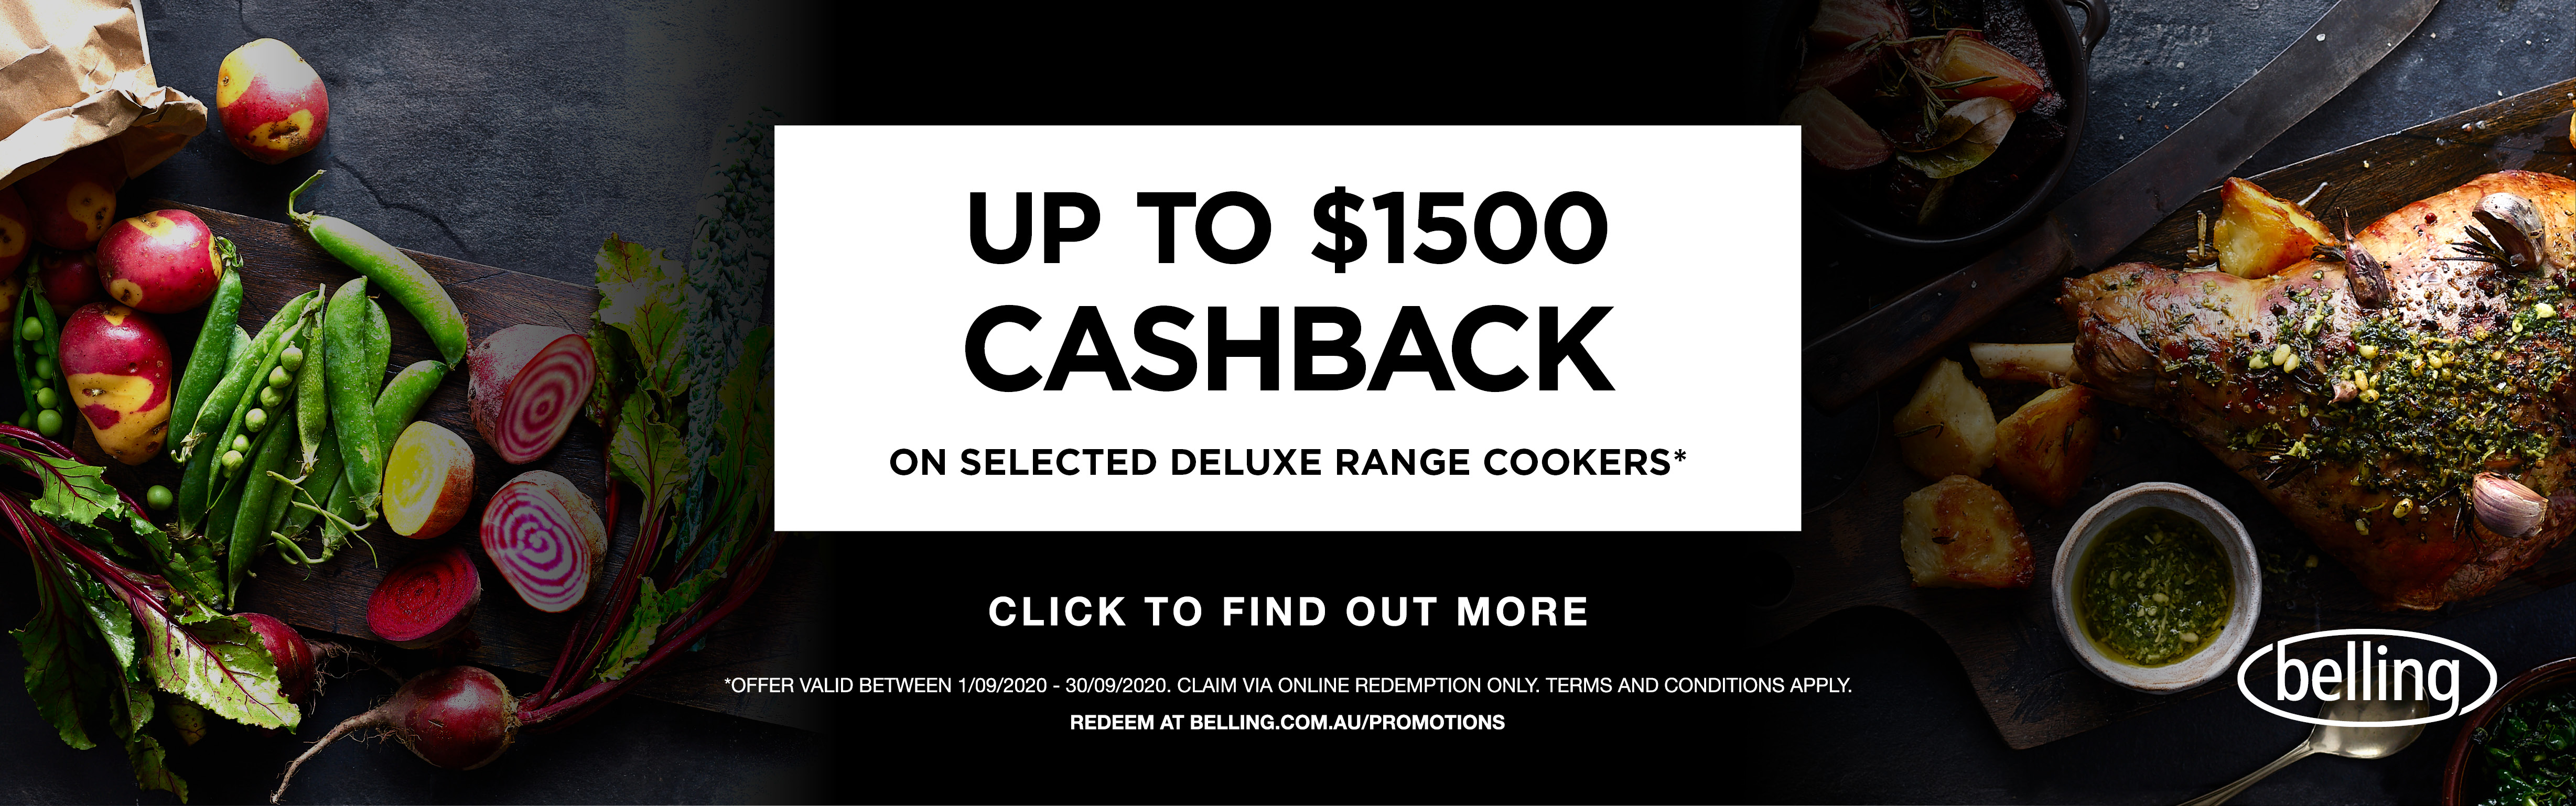 belling-cashbackpromo-september2020-webbanner-berloniappliances-1179x369....jpg